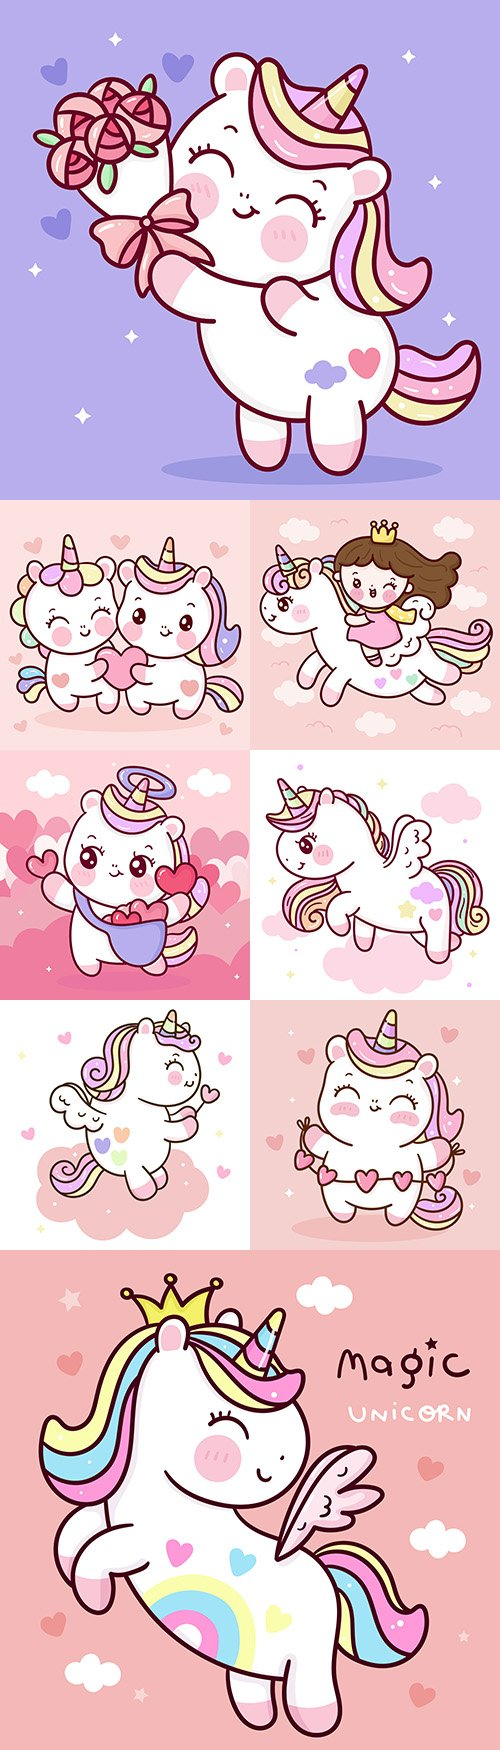 Cute unicorn princess cartoon with Pegasus wing